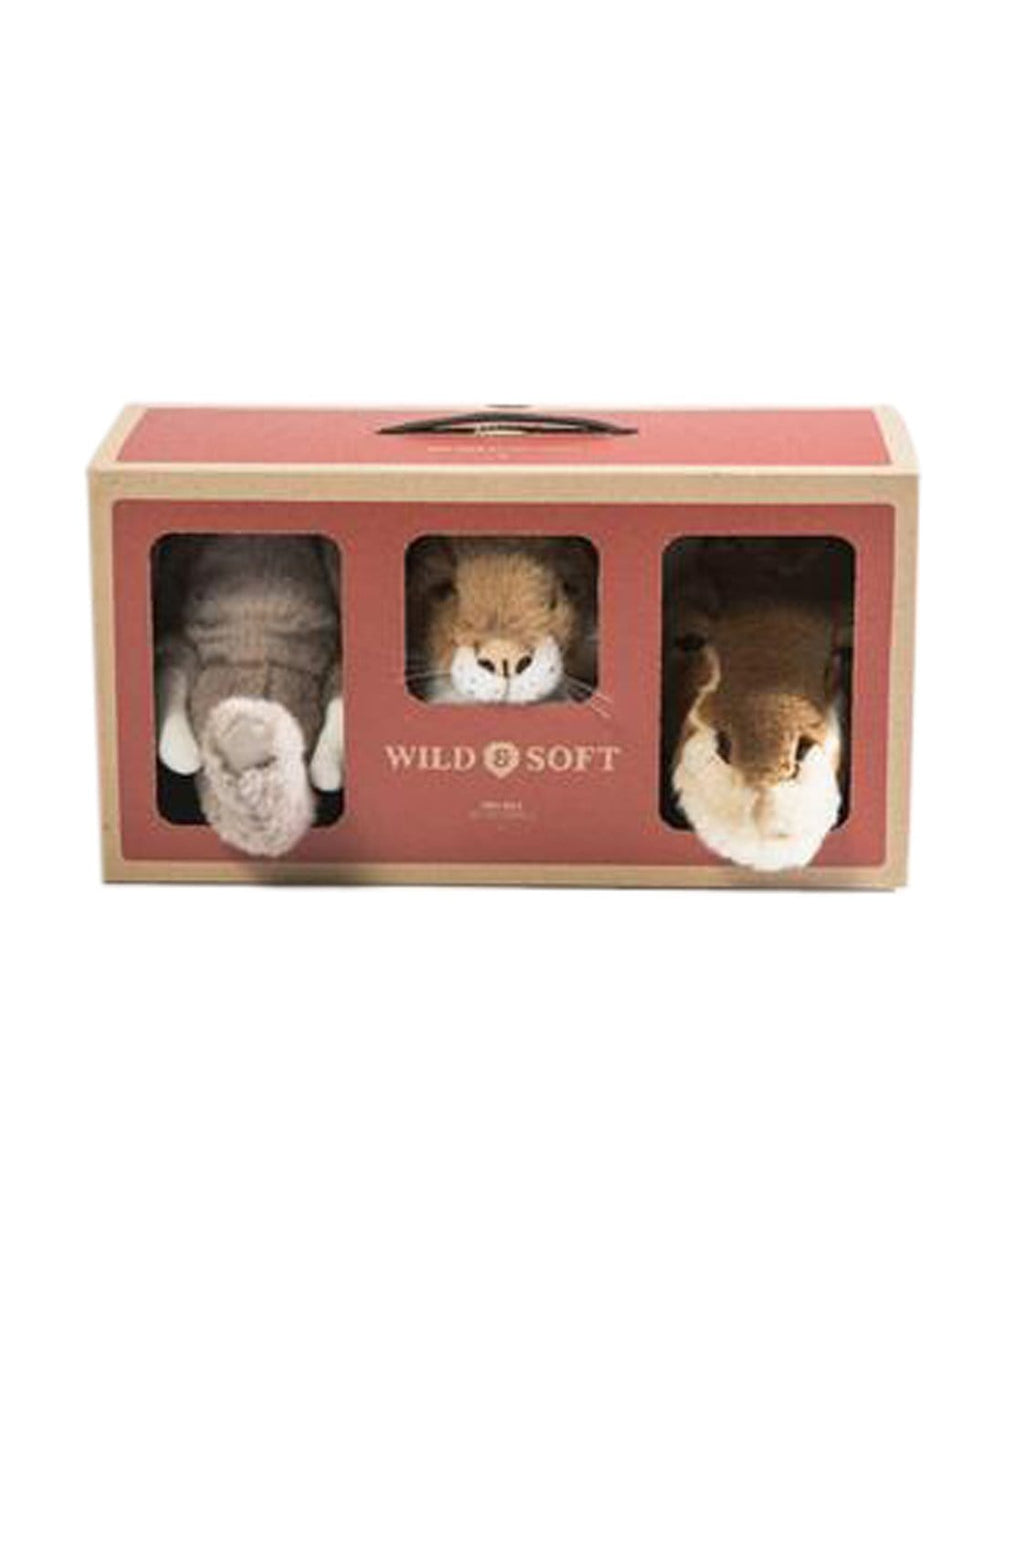 Wild and Soft Safari Box, Mini Elephant, Giraffe & Lion (PRE-ORDER AUG)